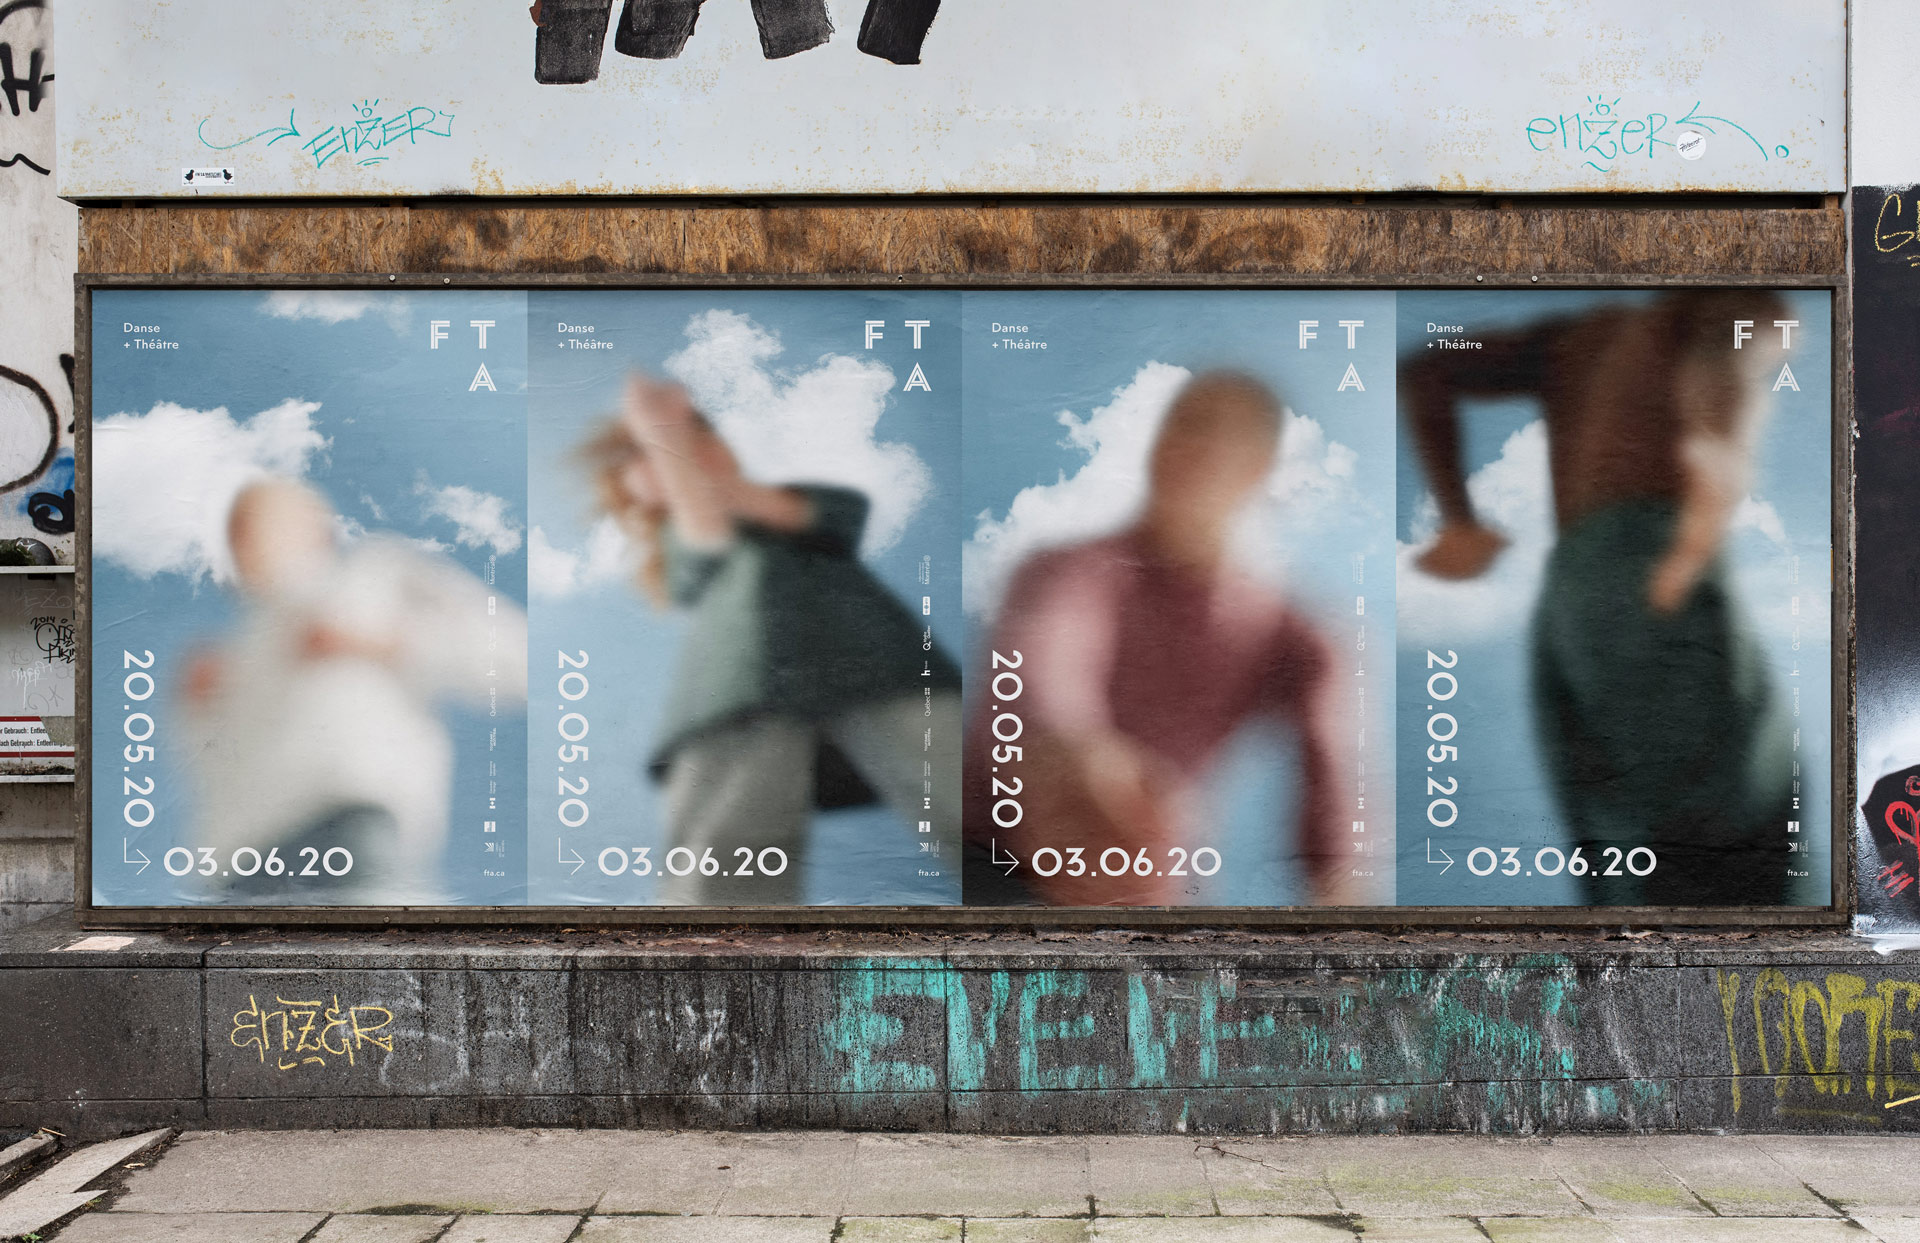 picture in street of campaign posters of blurred picture of dancers against focused blue sky for the FTA by Maxyme G Delisle with Maison W